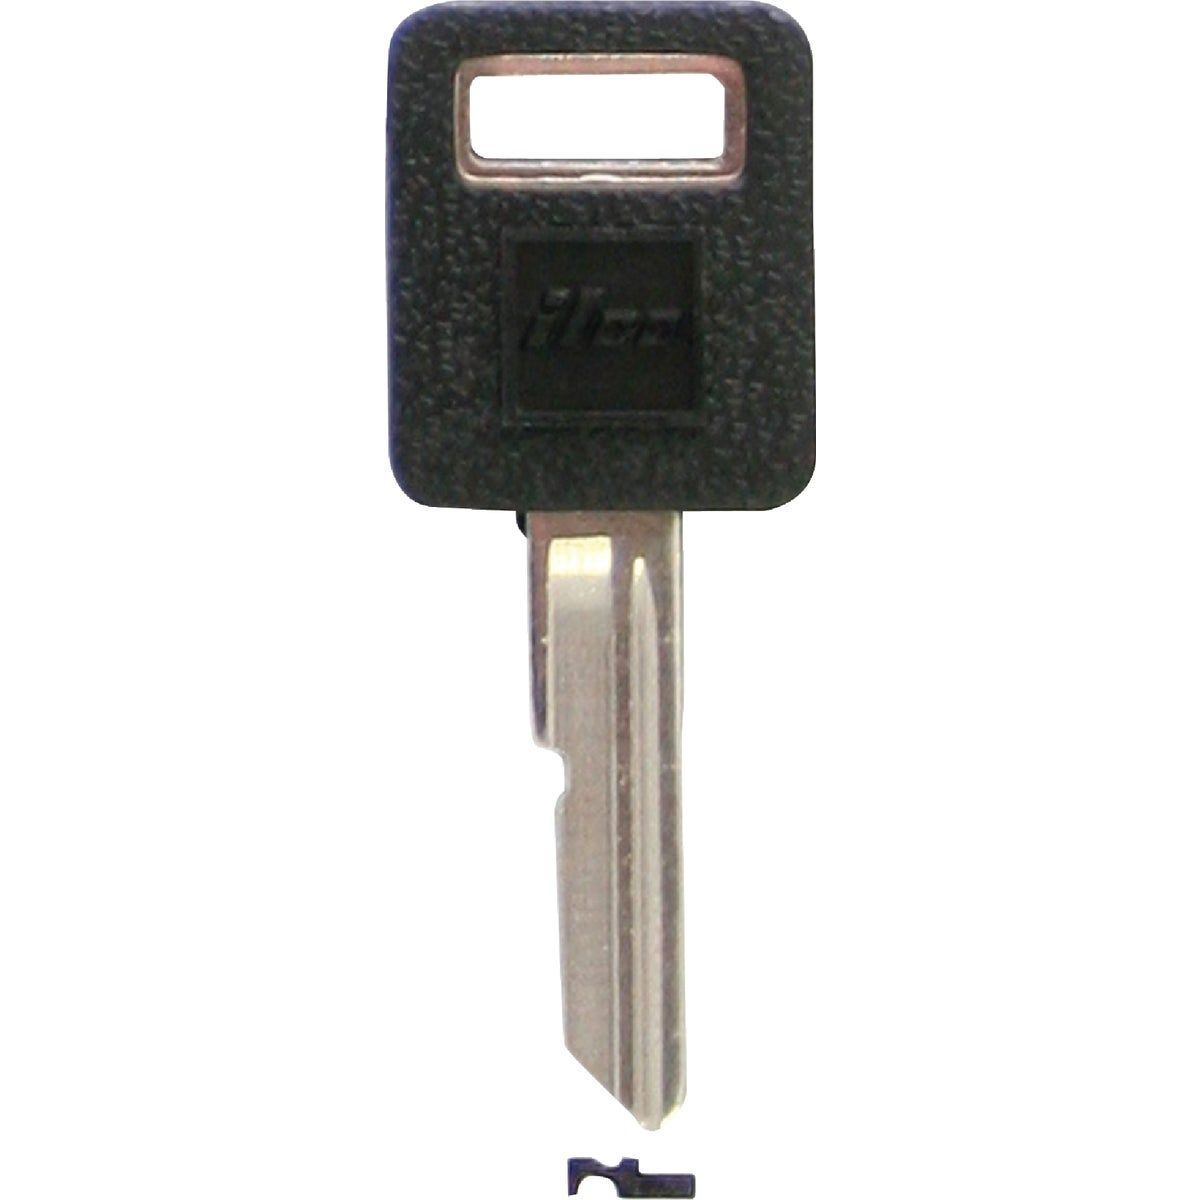 B44P GM AUTO KEY - B44P by Ilco Corp